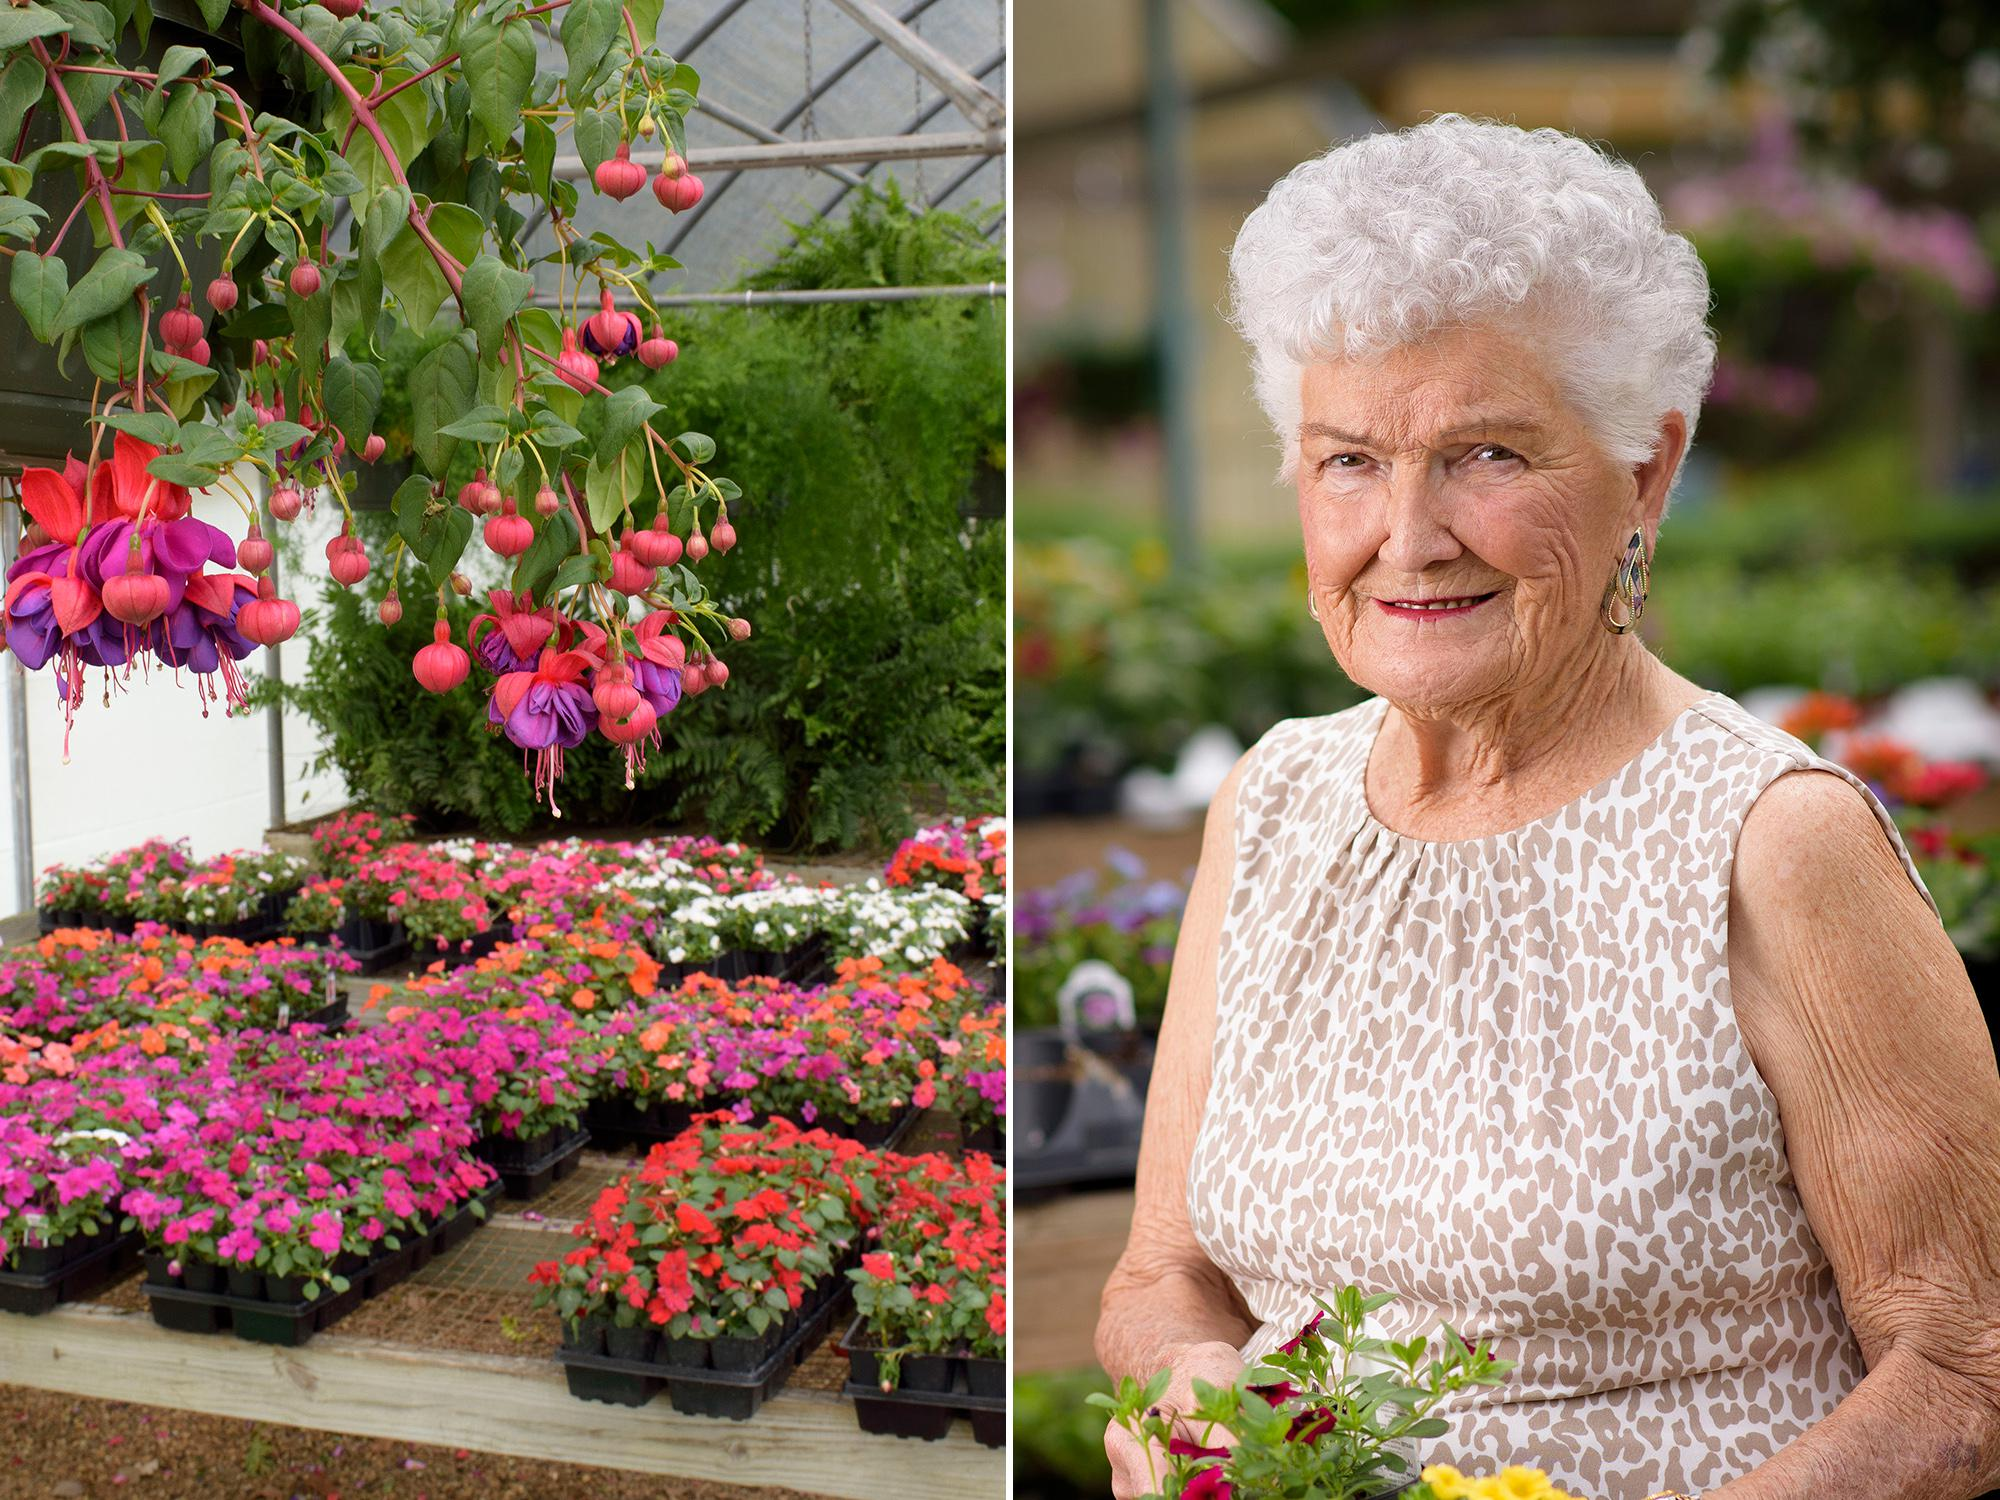 Customers still can find unusual items such as this fuchsia plant (left photo), at The Flower Center in Vicksburg. Bobbie Beard (right), former owner, began the successful horticulture business in her backyard 30 years ago. Her son and daughter-in-law now own the nursery. (Photos by MSU Extension Service/Kevin Hudson)